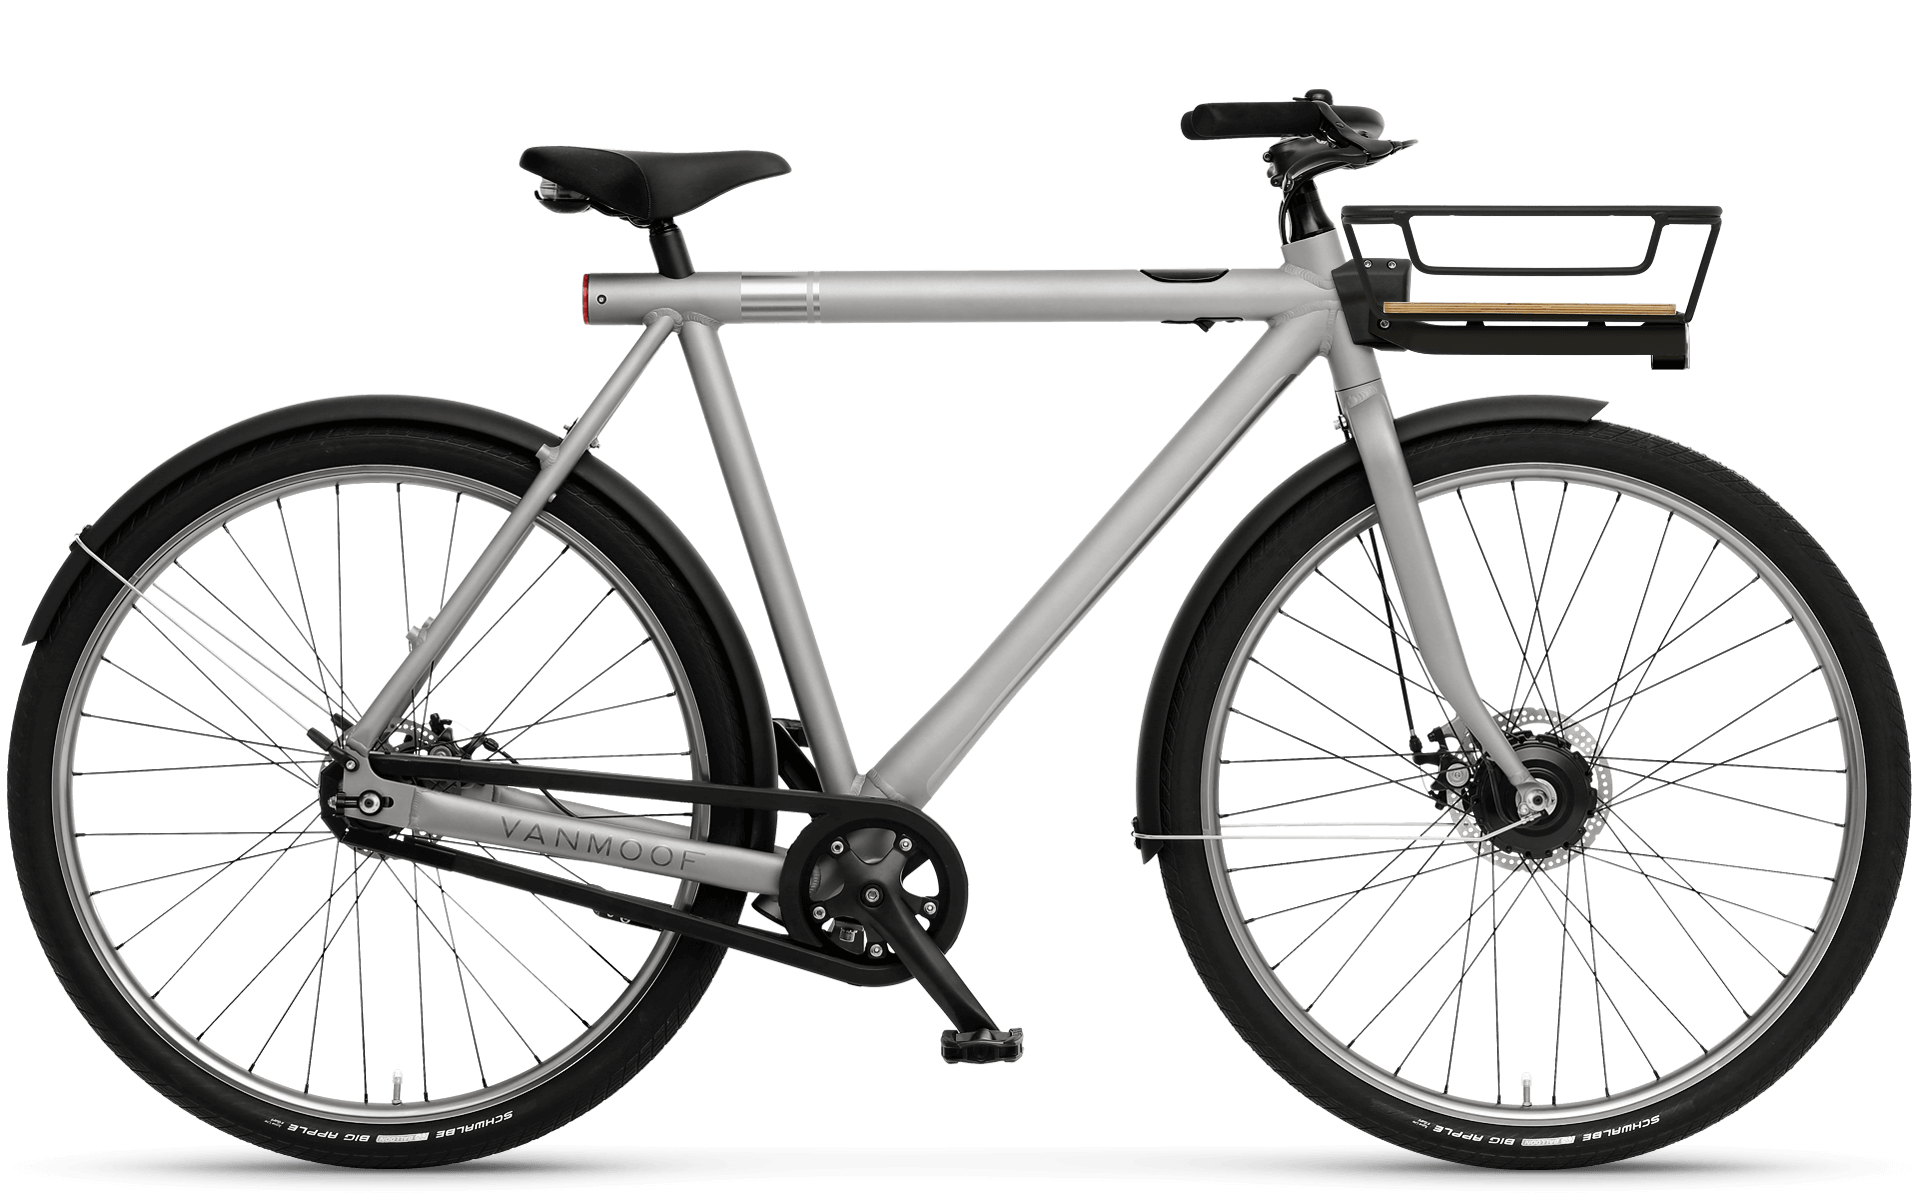 P Our Goal With The Vanmoof Electrified S Was Simple Create An